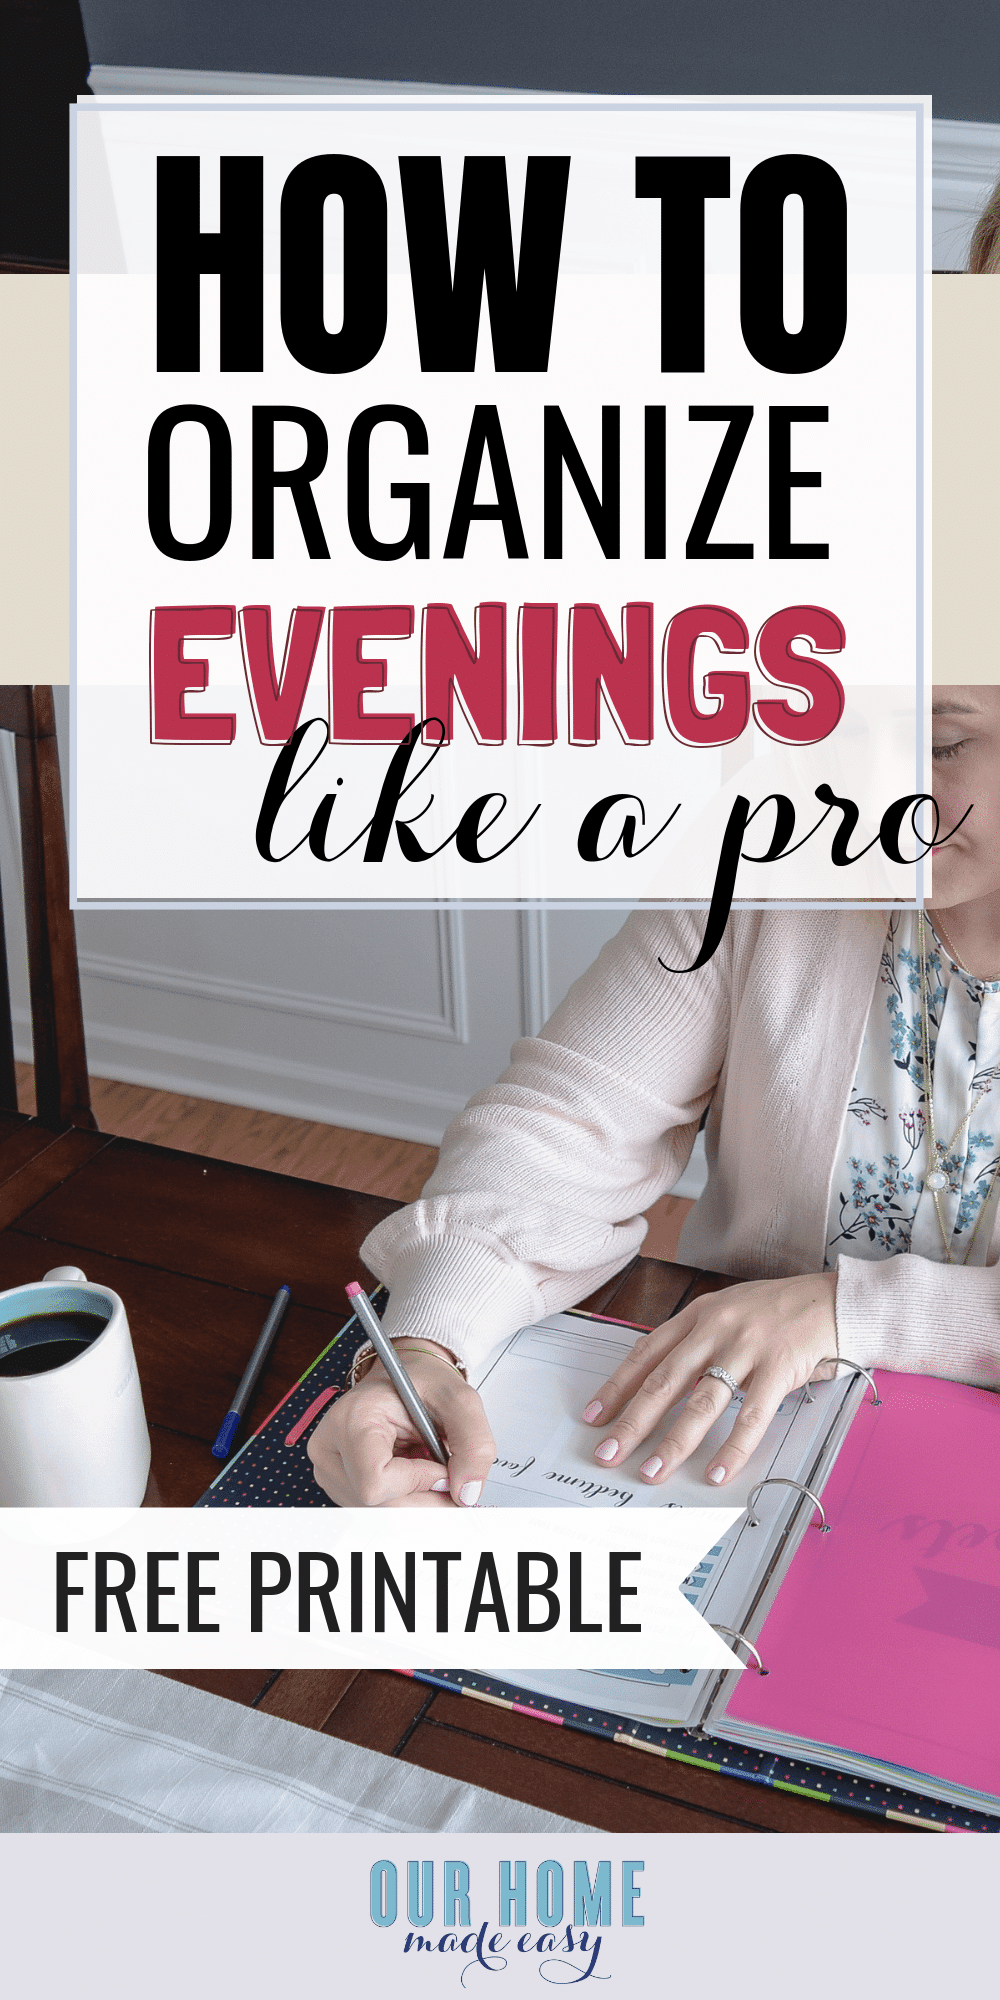 Get this after school planner free printable to help you overcome the evening chaos. Download the free printable and stop feeling so overwhelmed. #school #planner #organize #student